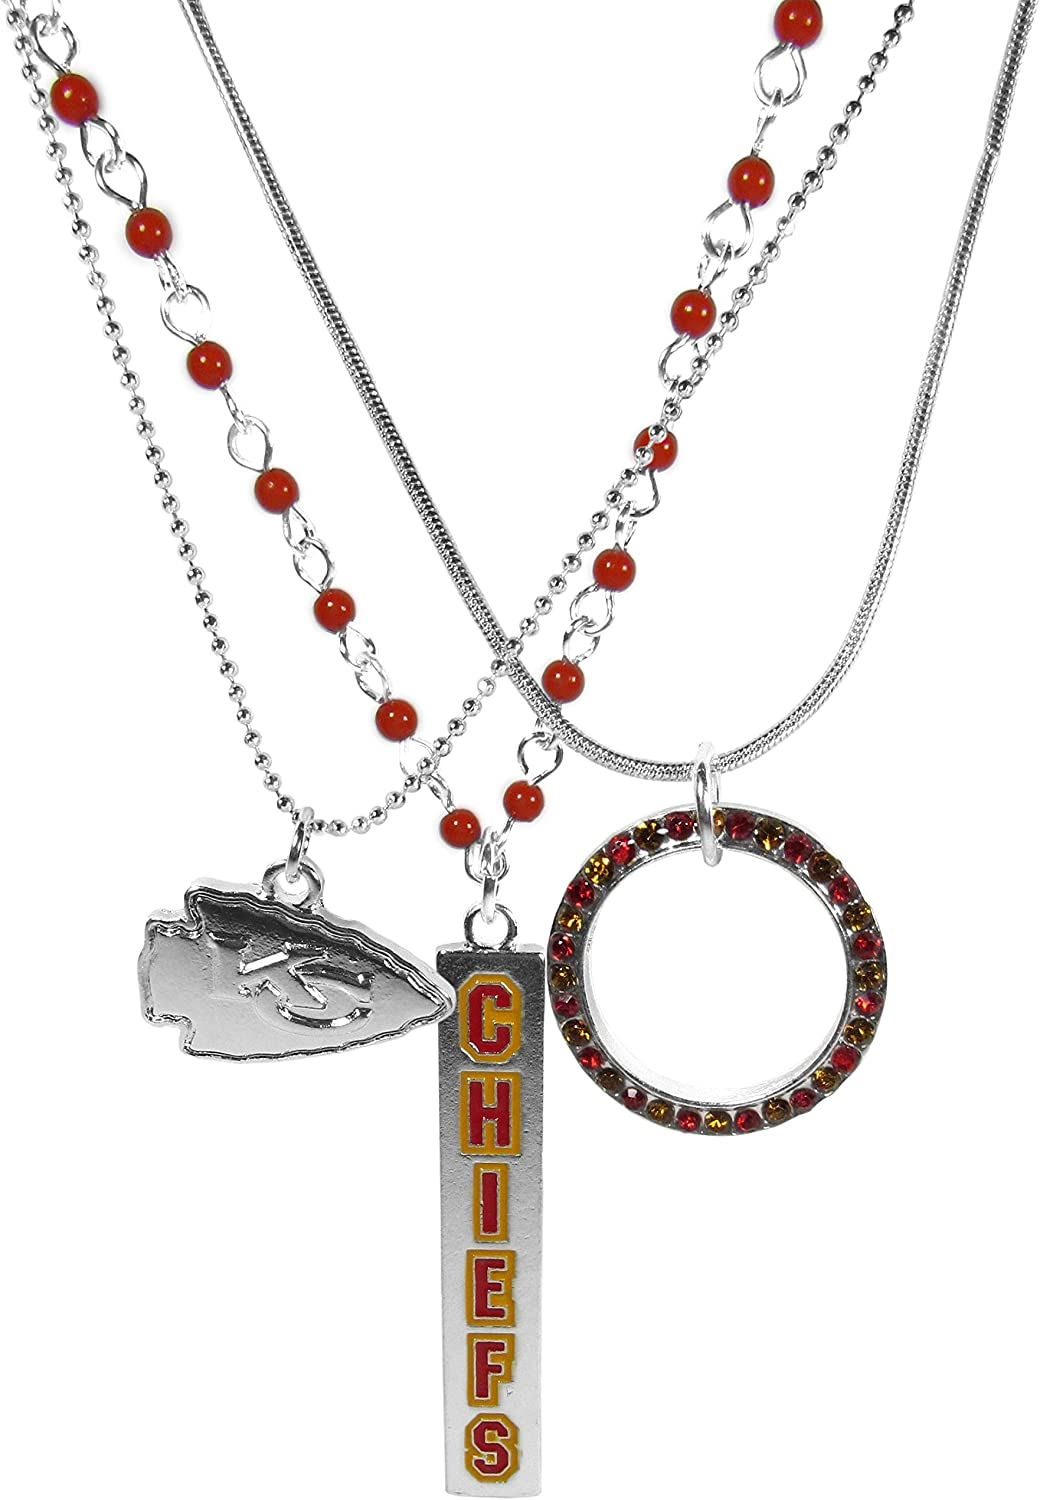 Siskiyou NFL Womens Trio Necklace Set